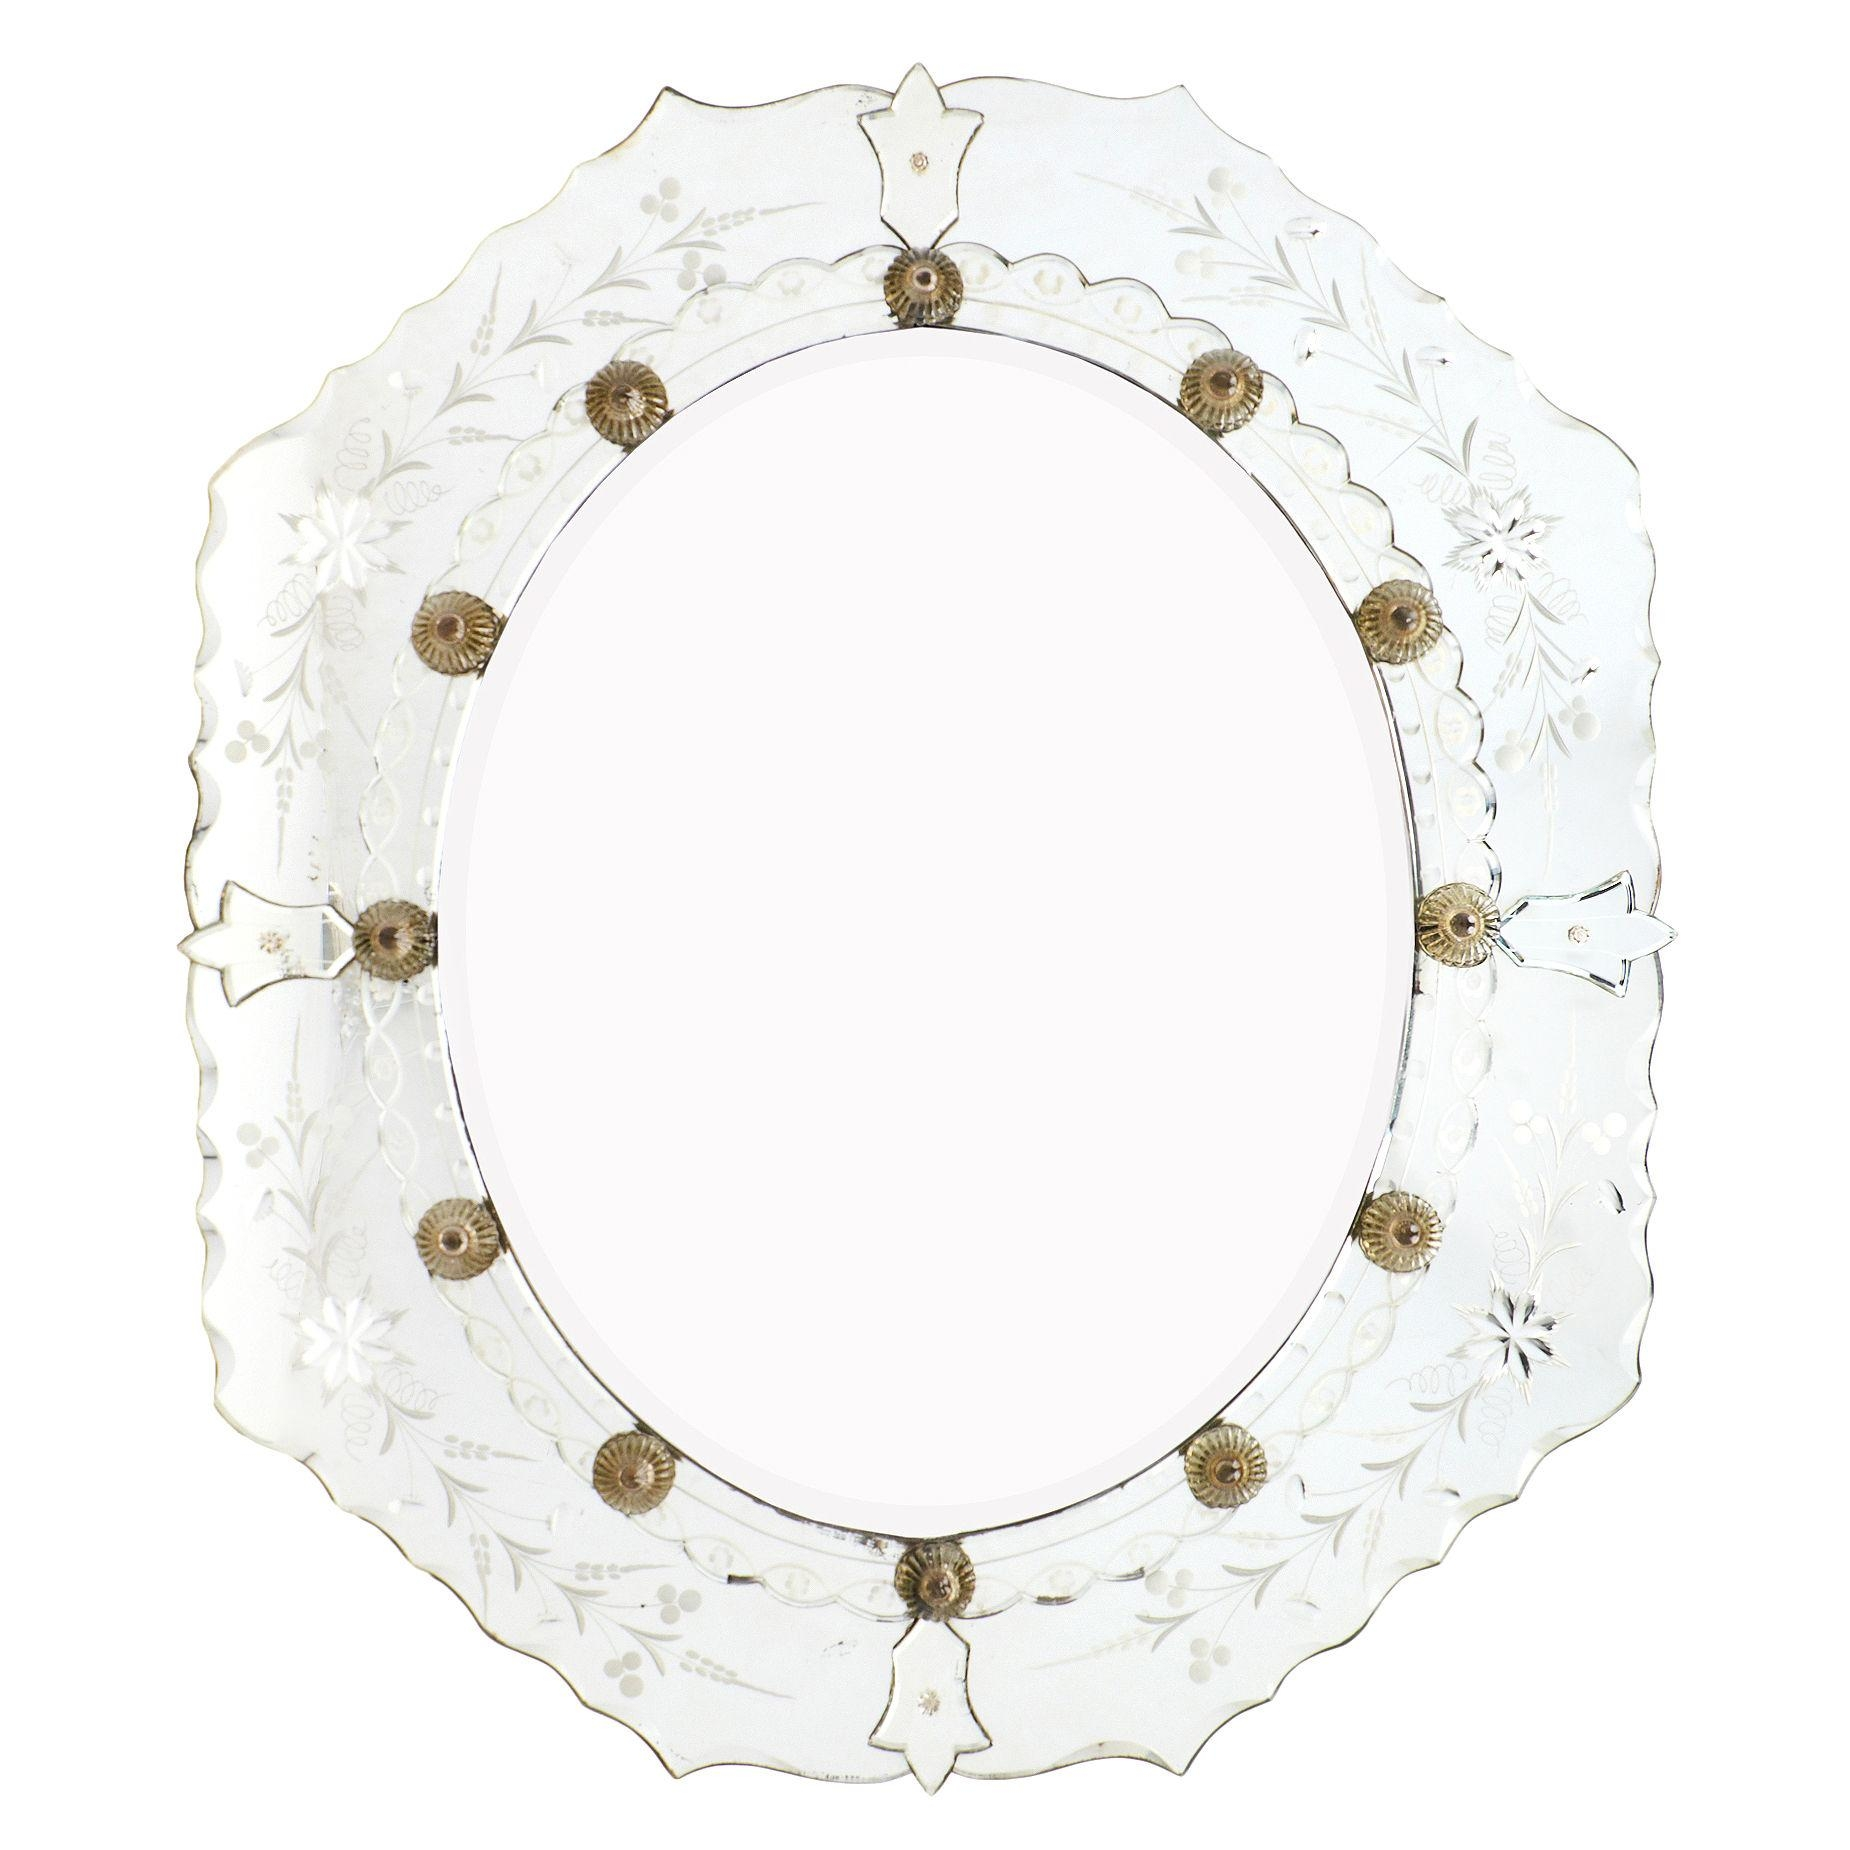 Antique Venetian Glass Oval Mirror – Jean Marc Fray With Venetian Oval Mirror (Image 4 of 20)